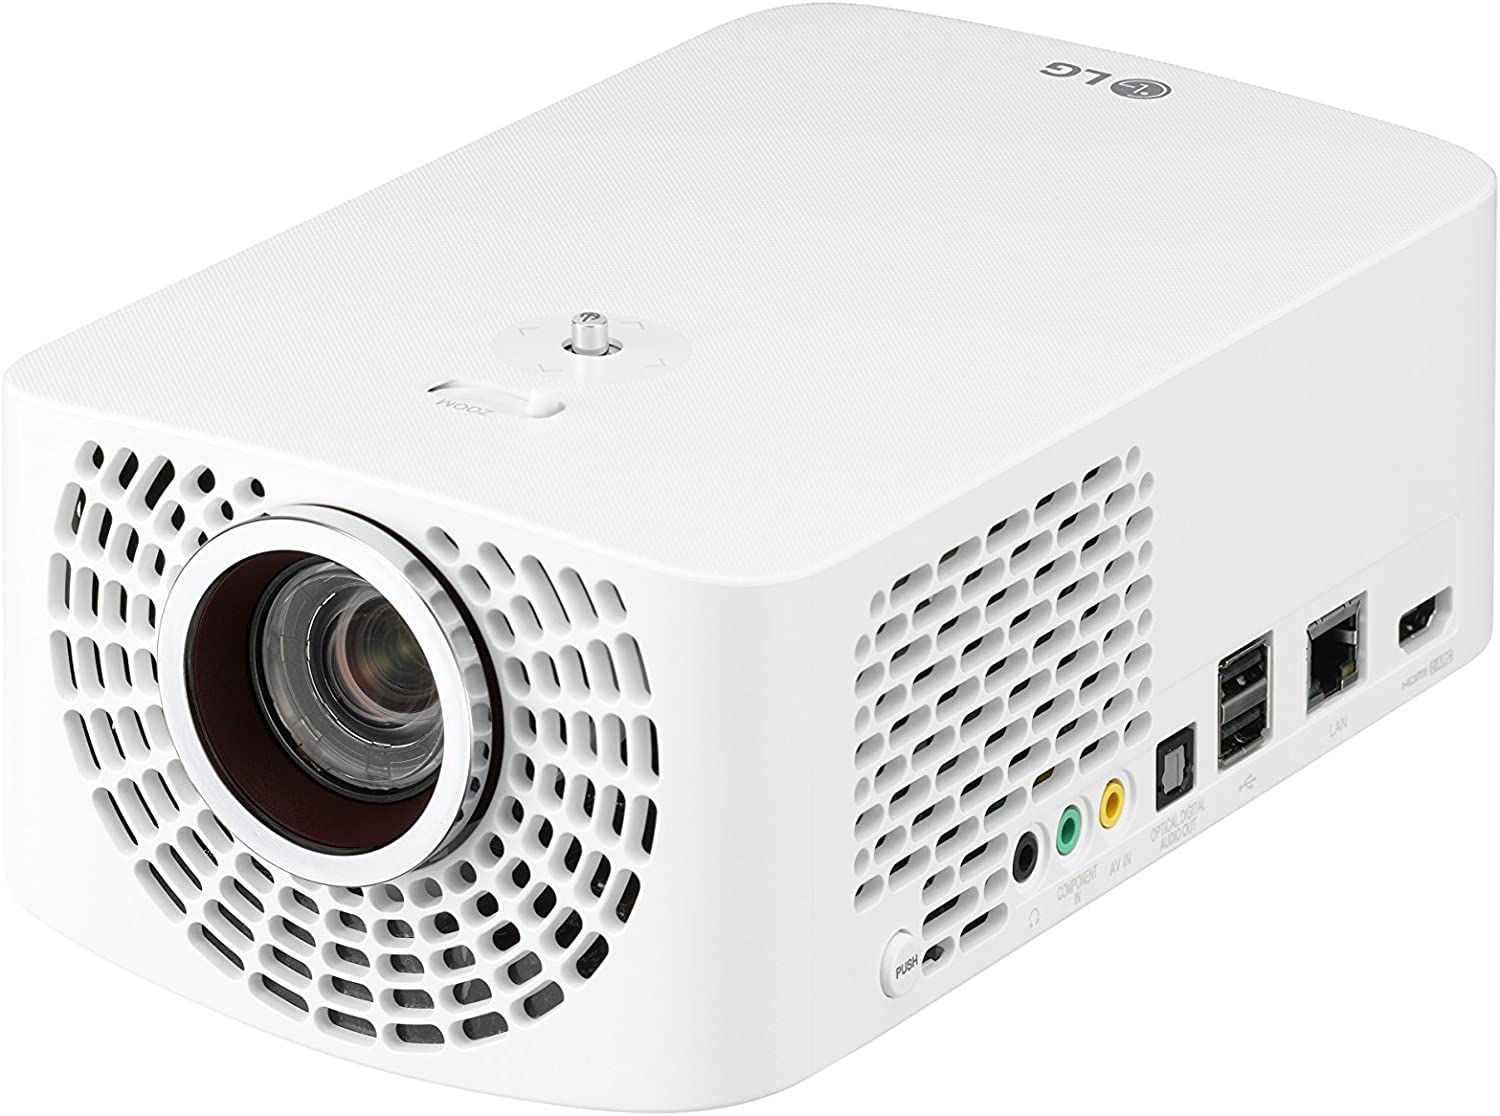 LG PF1500 Full HD Portable LED Smart TV Home Theater Projector with Magic Remote